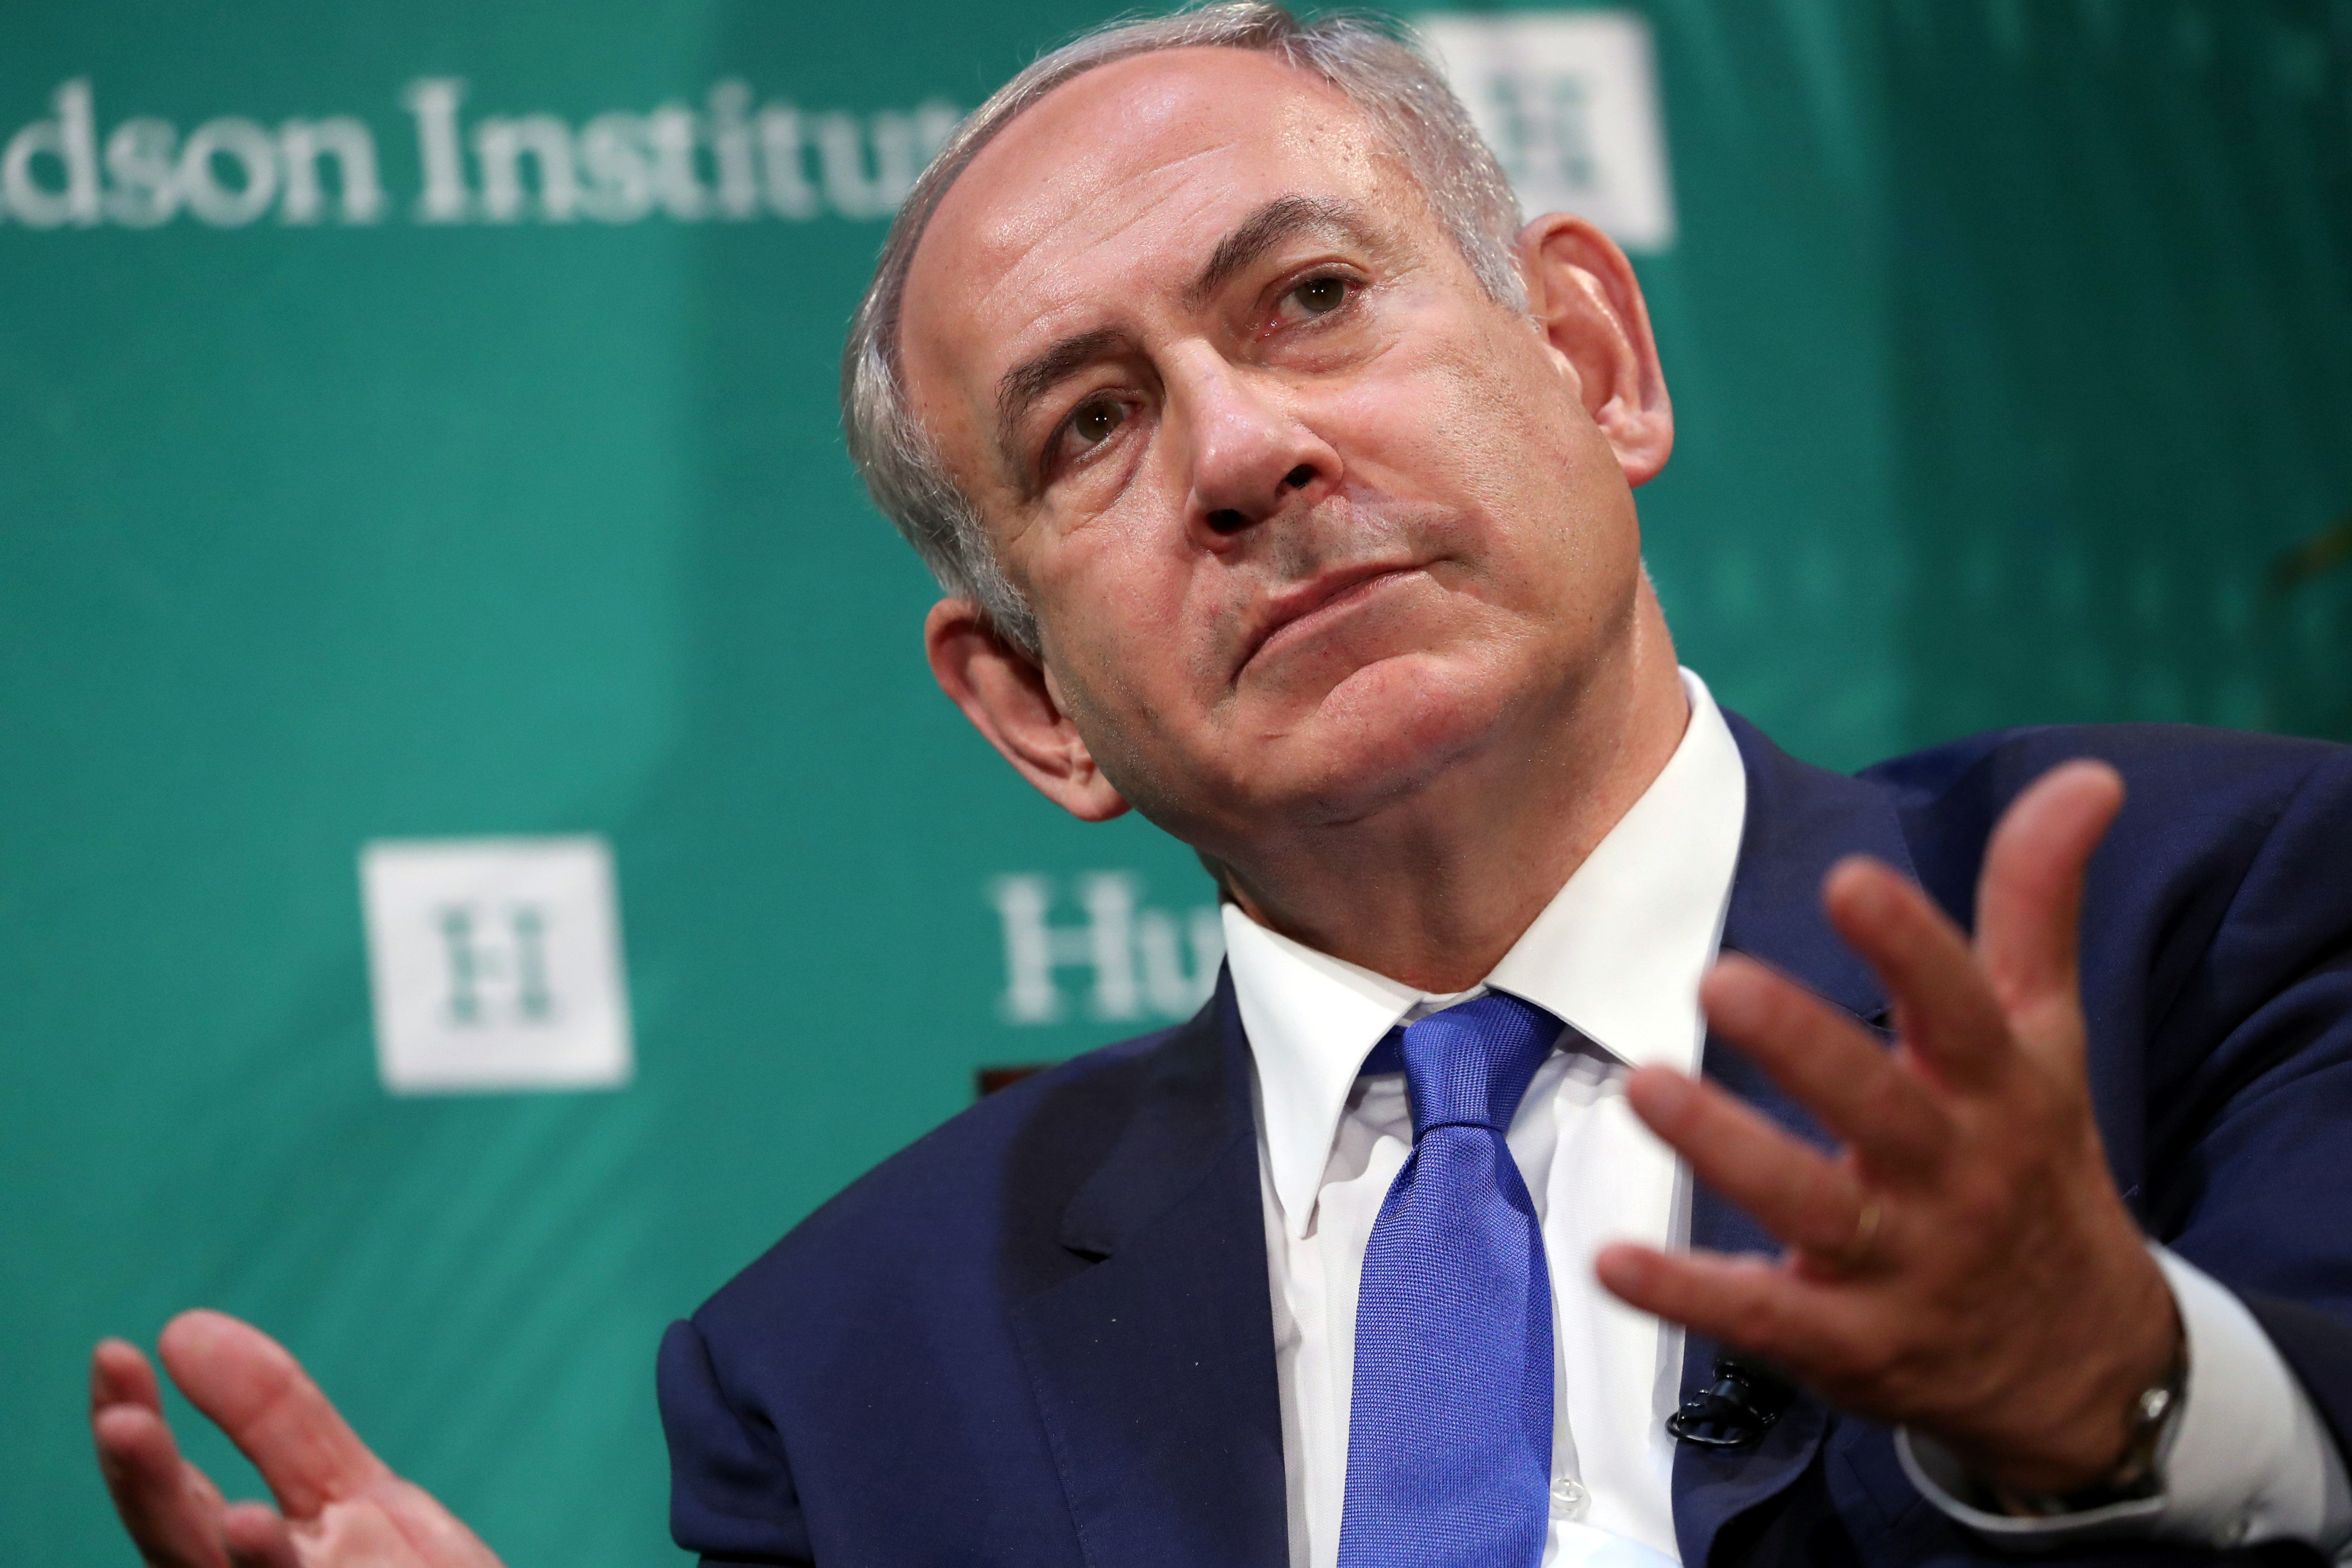 Israeli Prime Minister Benjamin Netanyahu delivers remarks at the Hudson Institute's Herman Kahn Award Ceremony at the Plaza Hotel in Manhattan, New York, U.S., September 22, 2016. REUTERS/Andrew Kelly